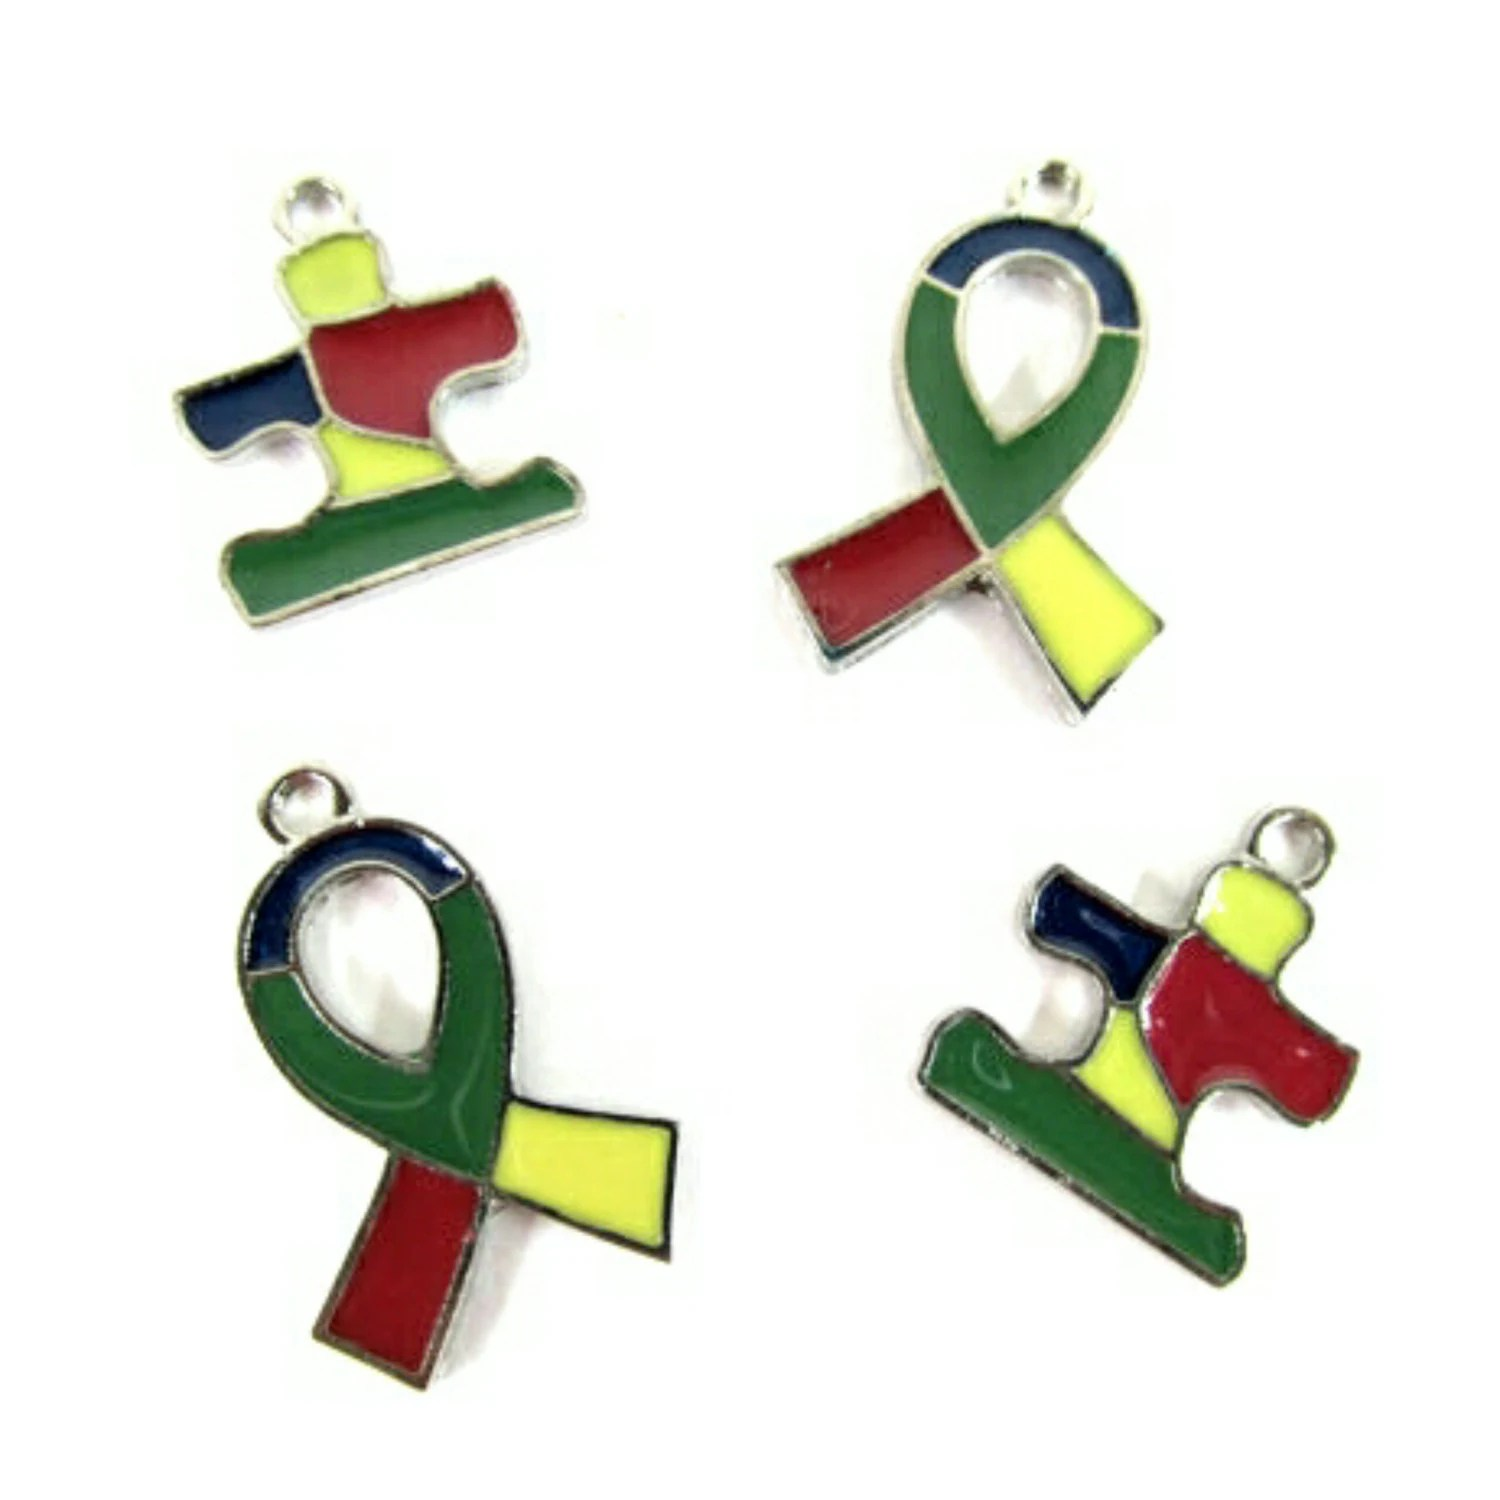 Ribbon Amp Puzzle Piece Autism Awareness Charms Jewelry